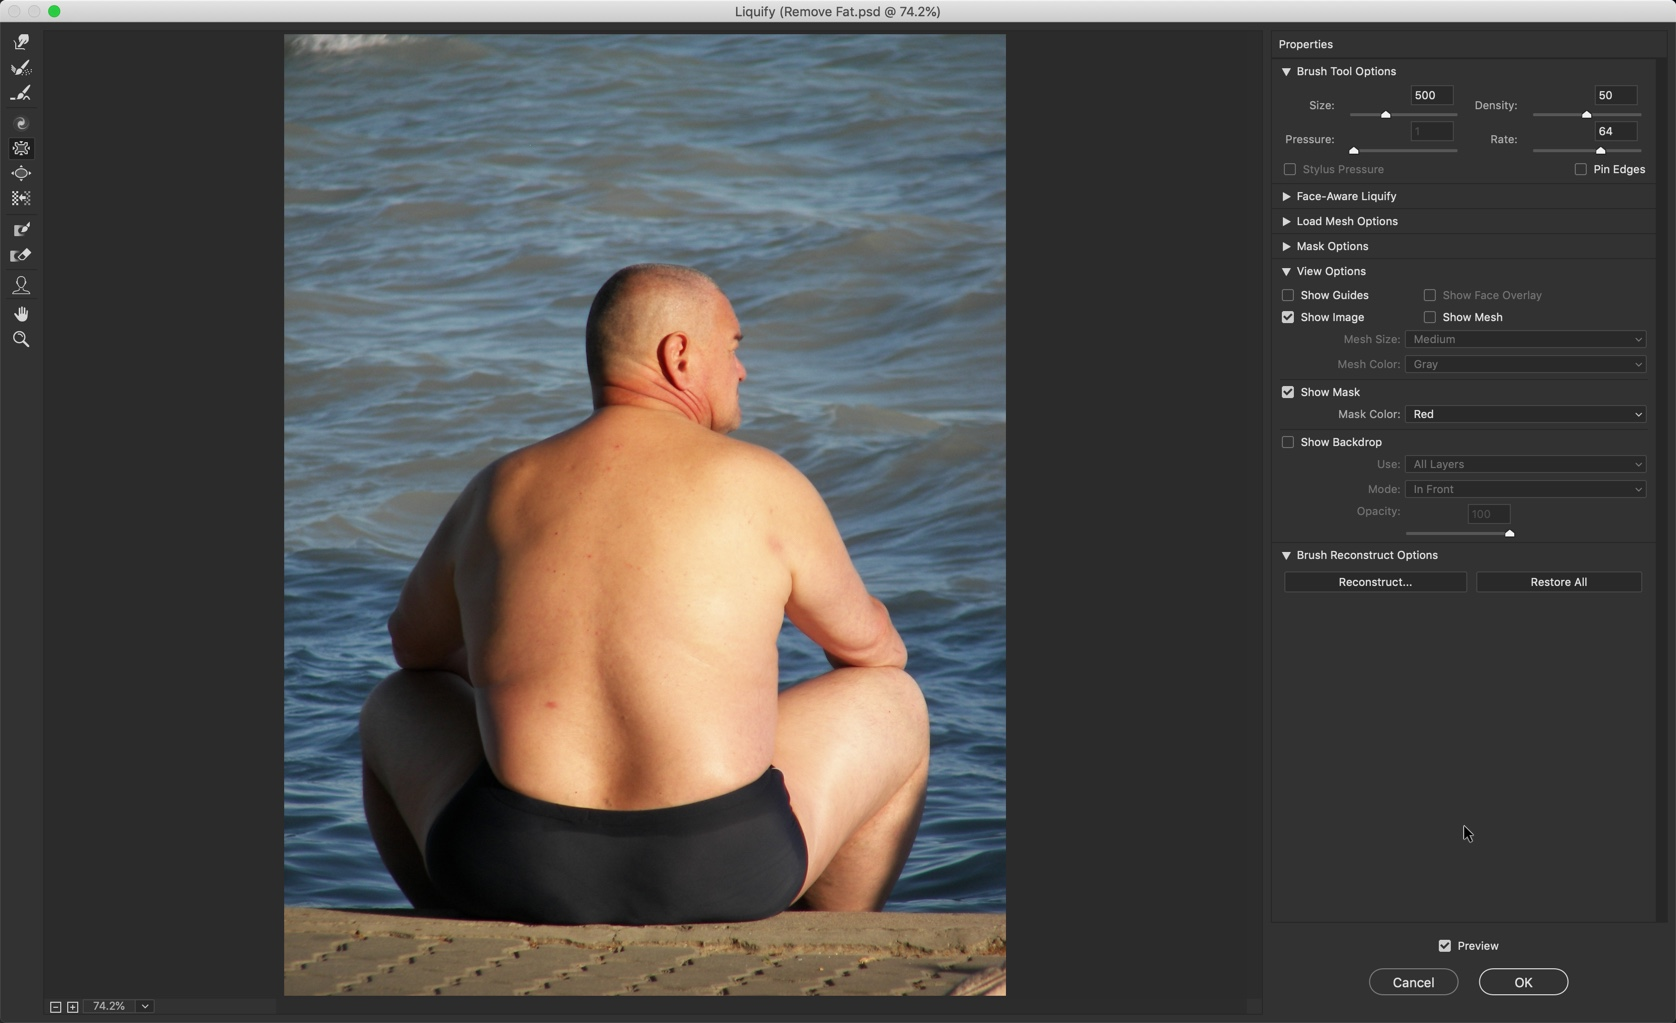 11-2 - The Ultimate Guide to Remove Fat in Photoshop